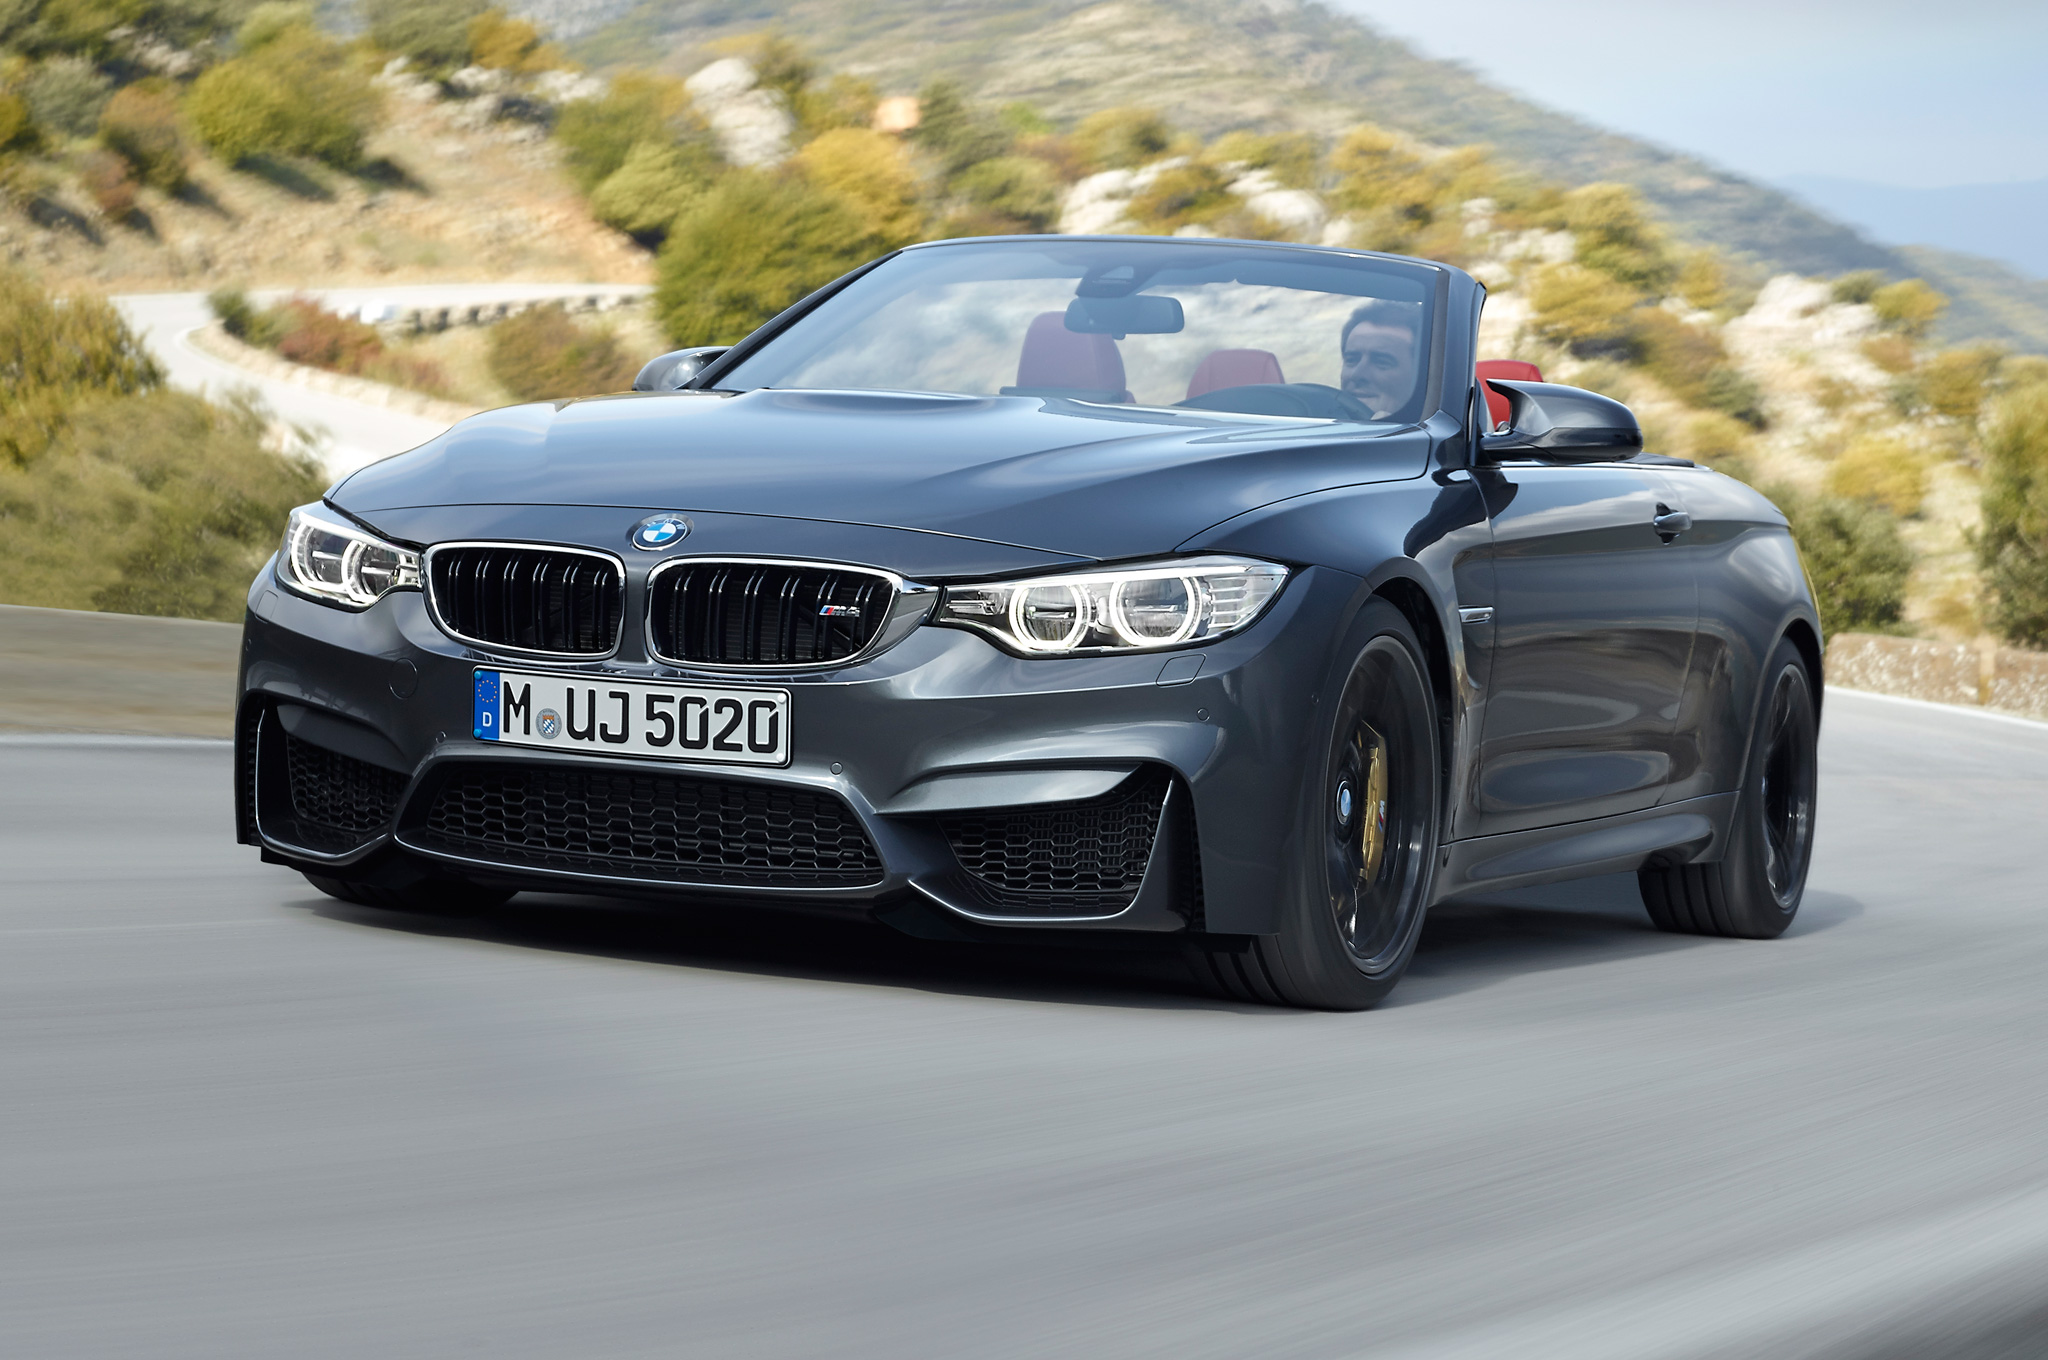 2015 Bmw M4 Convertible Road Test (View 1 of 50)